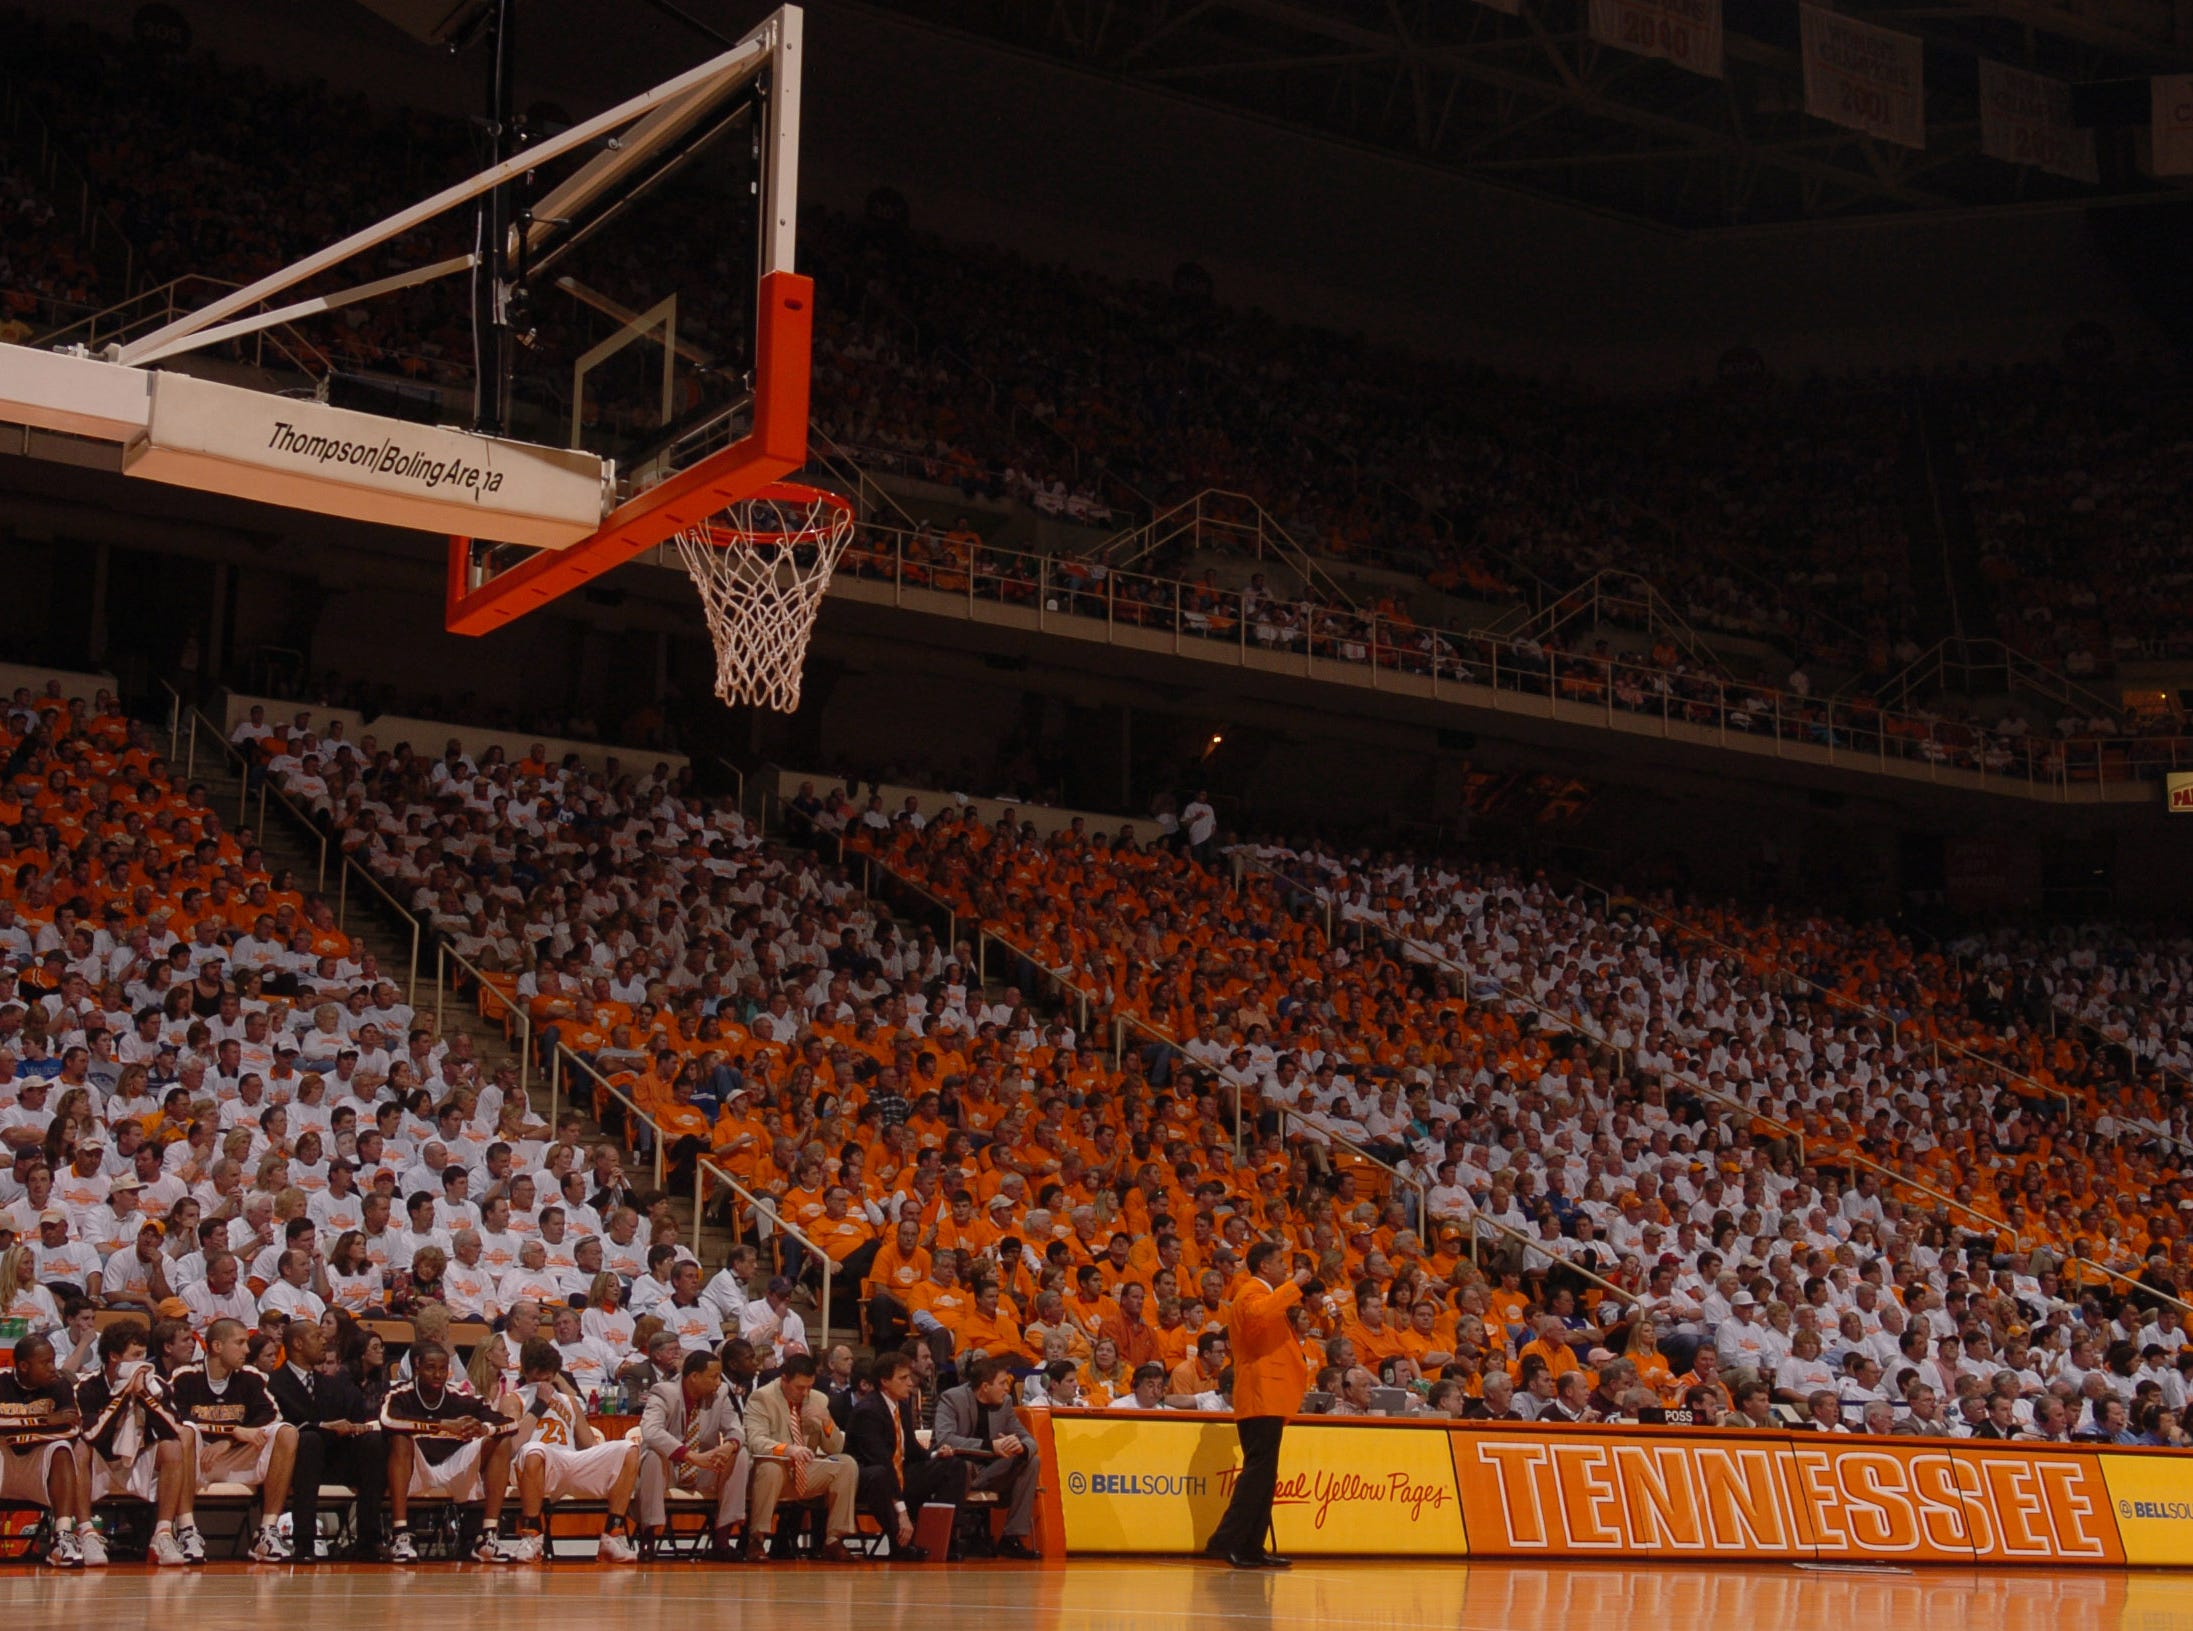 UT Fans form an orange and white pattern in the stands as Bruce Pearl coaches his team against Kentucky at Thompson Boling Arena in March 2006.